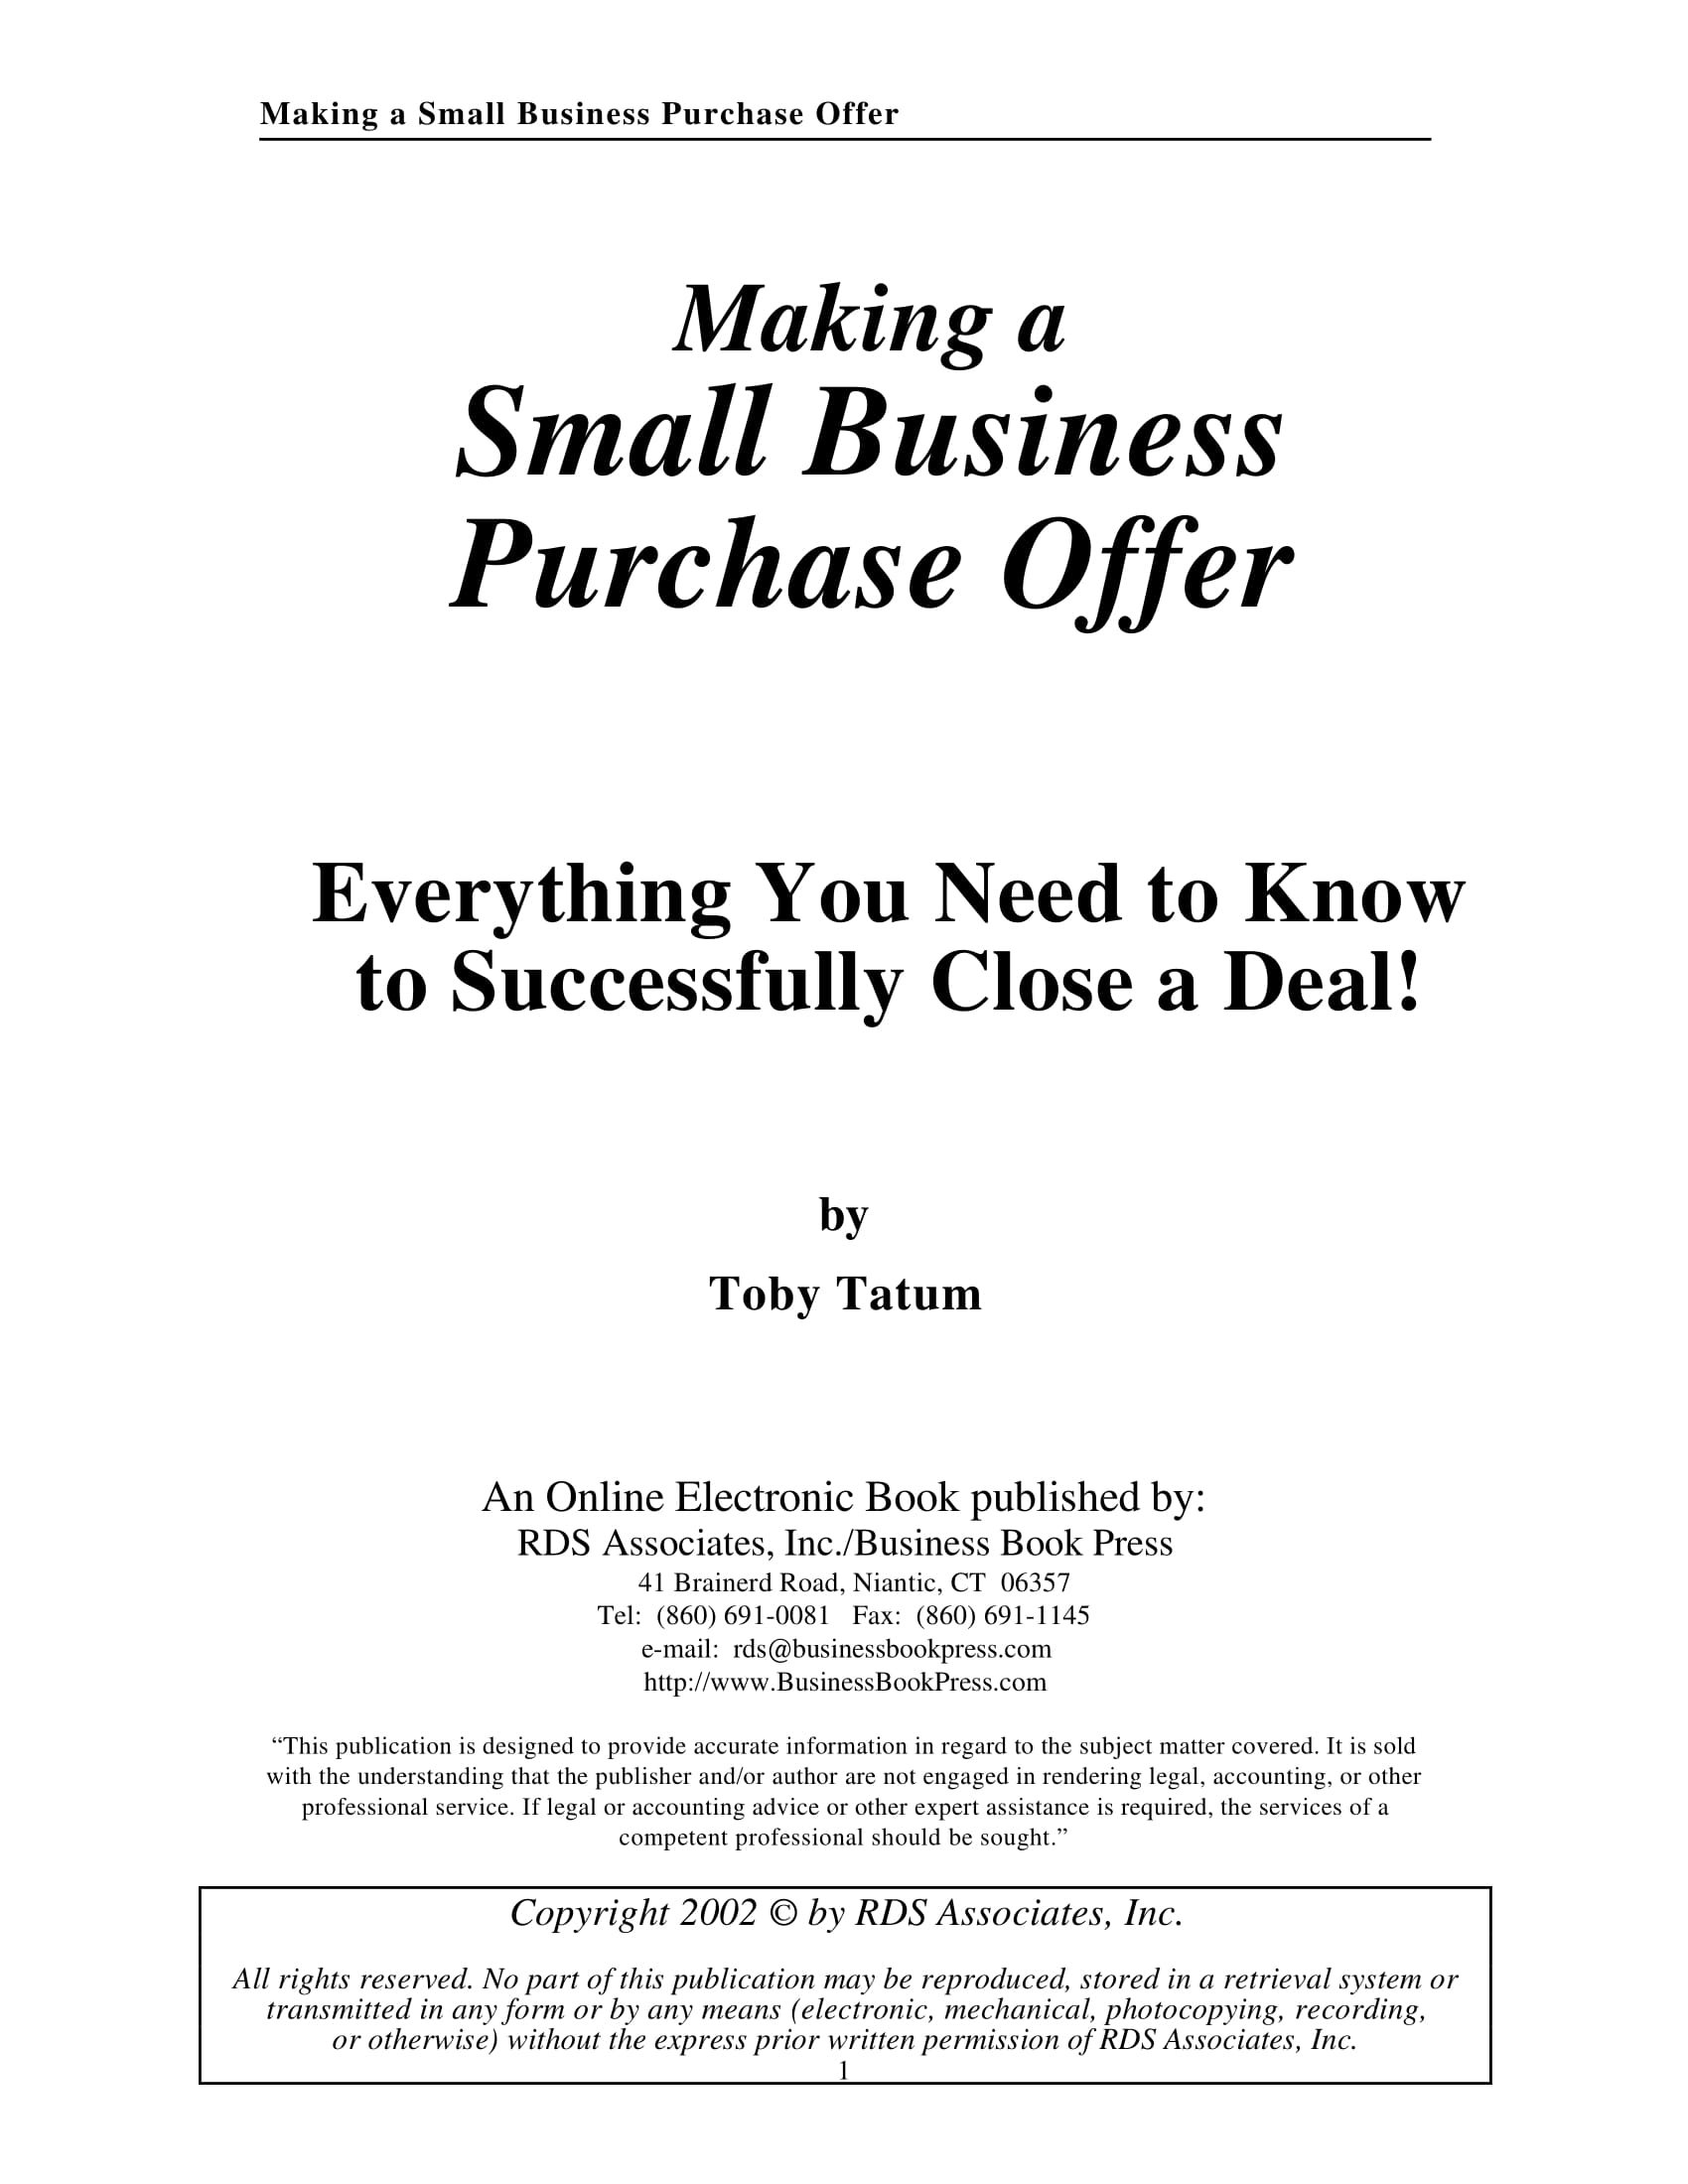 small business purchase offer example 001